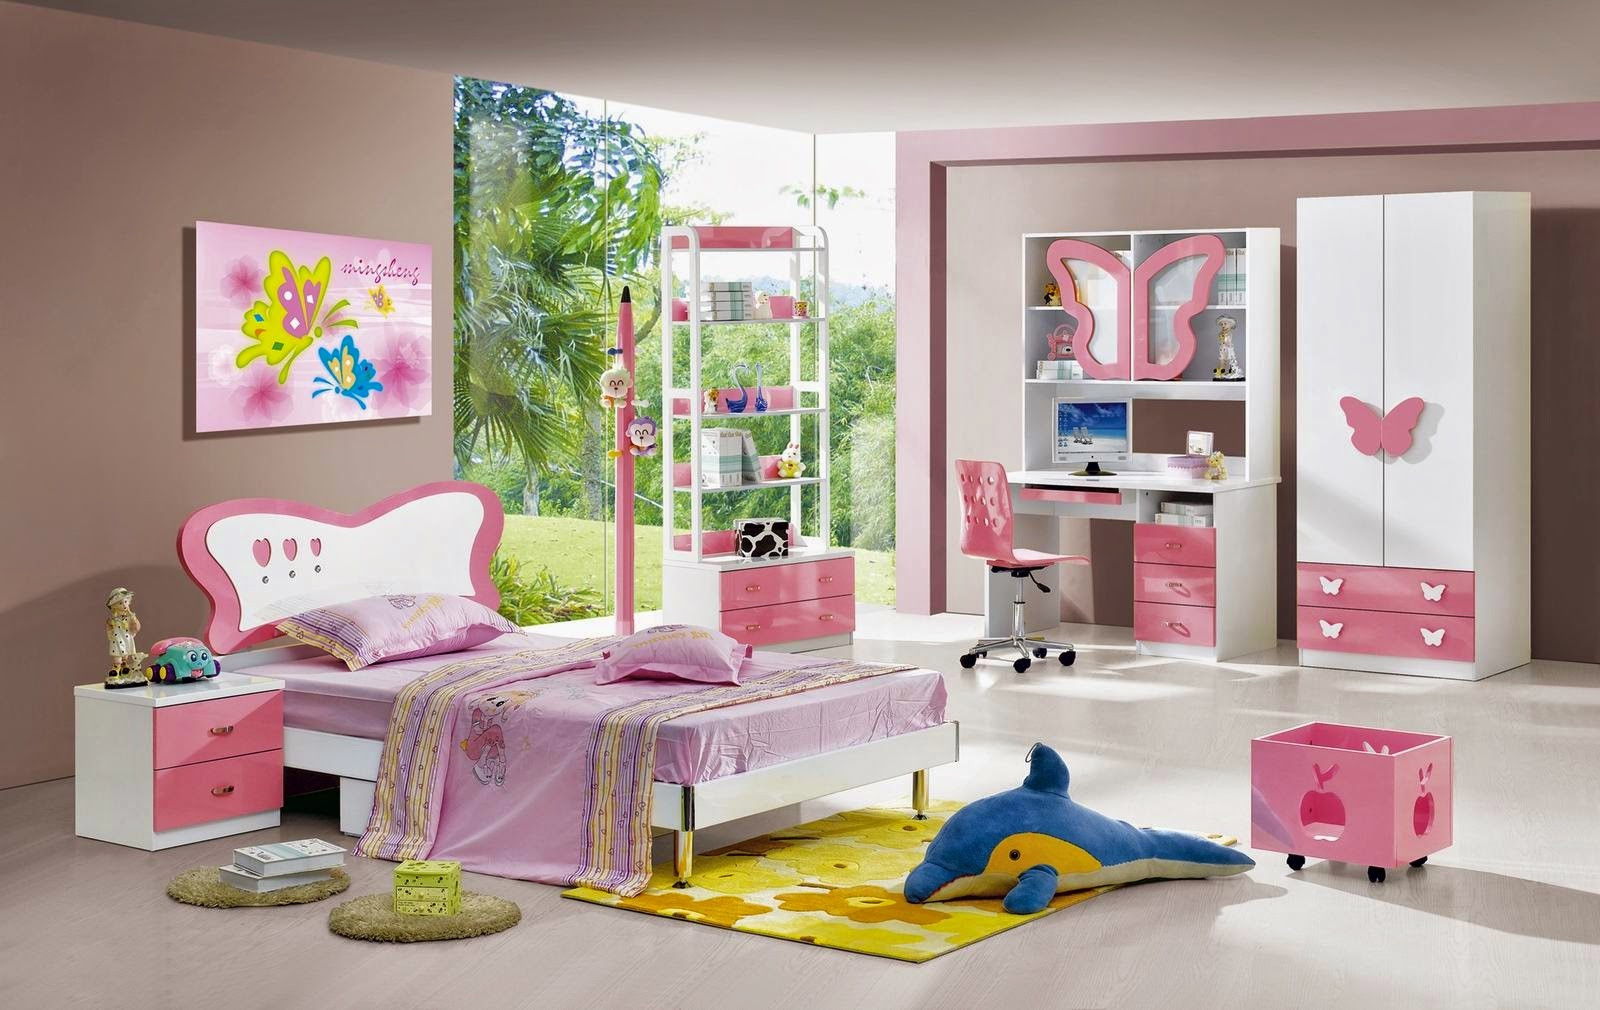 Best ideas about Kids Room Design . Save or Pin 44 Inspirational Kids Room Design Ideas Interior Design Now.